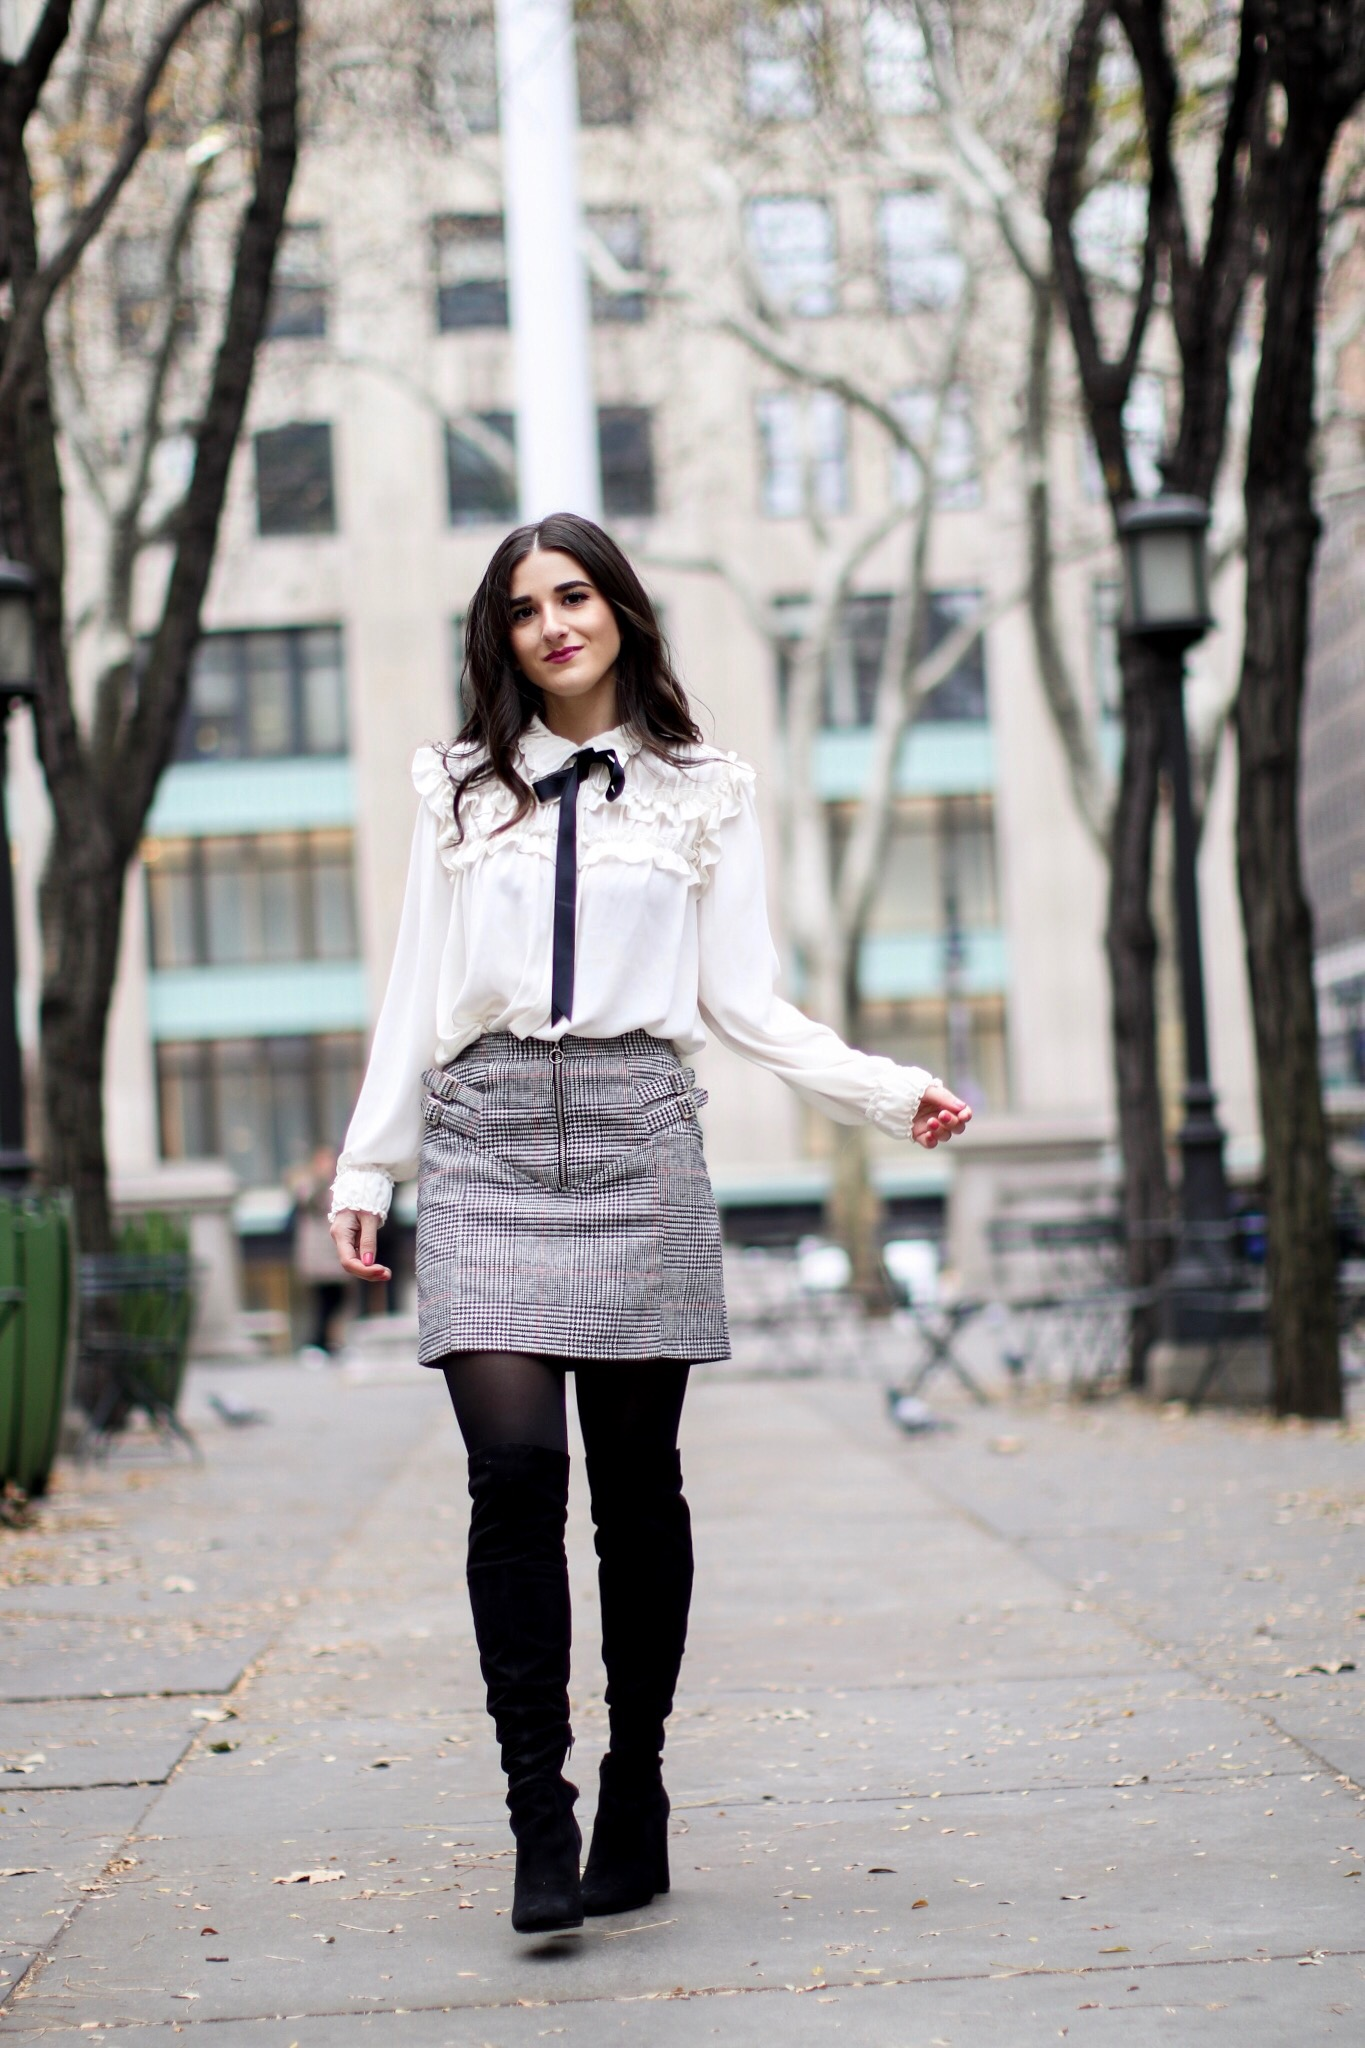 White Bow Blouse Grey Plaid Skirt 5 Tips To Meet Your Deadlines Esther Santer Fashion Blog NYC Street Style Blogger Outfit OOTD Trendy Black Bow Over The Knee Boots Girl Women Sophisticated Classy Feminine Shoes Henri Bendel West 57th Schoolbag Shop.JPG